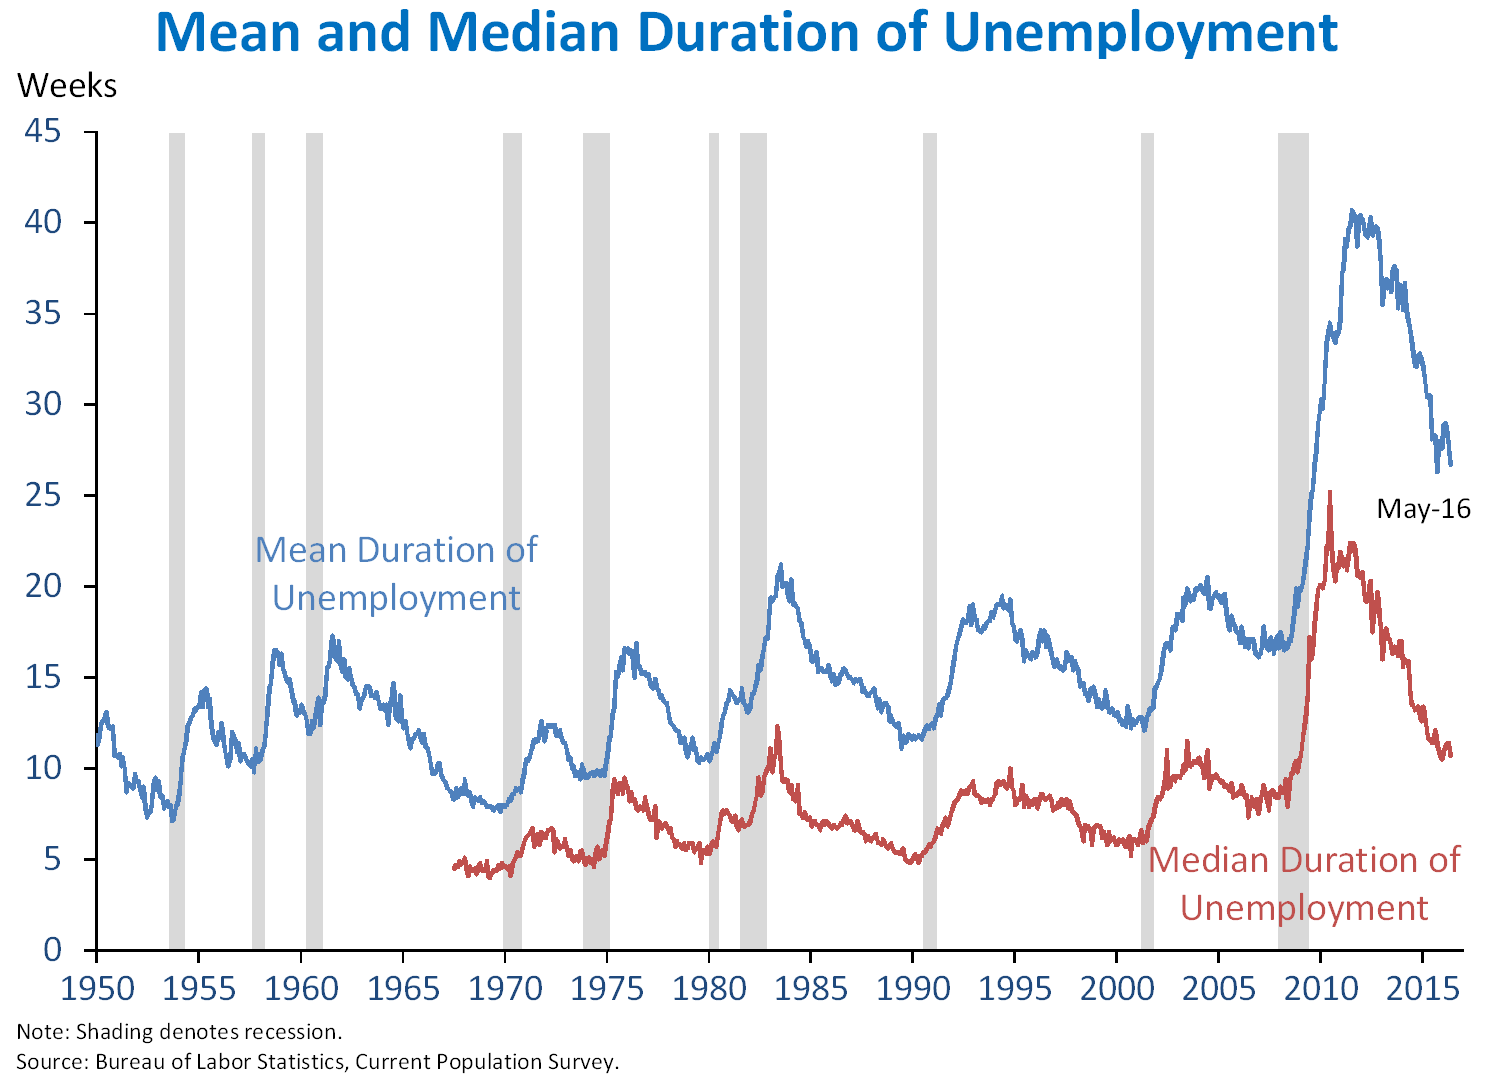 Mean and Median Duration of Unemployment